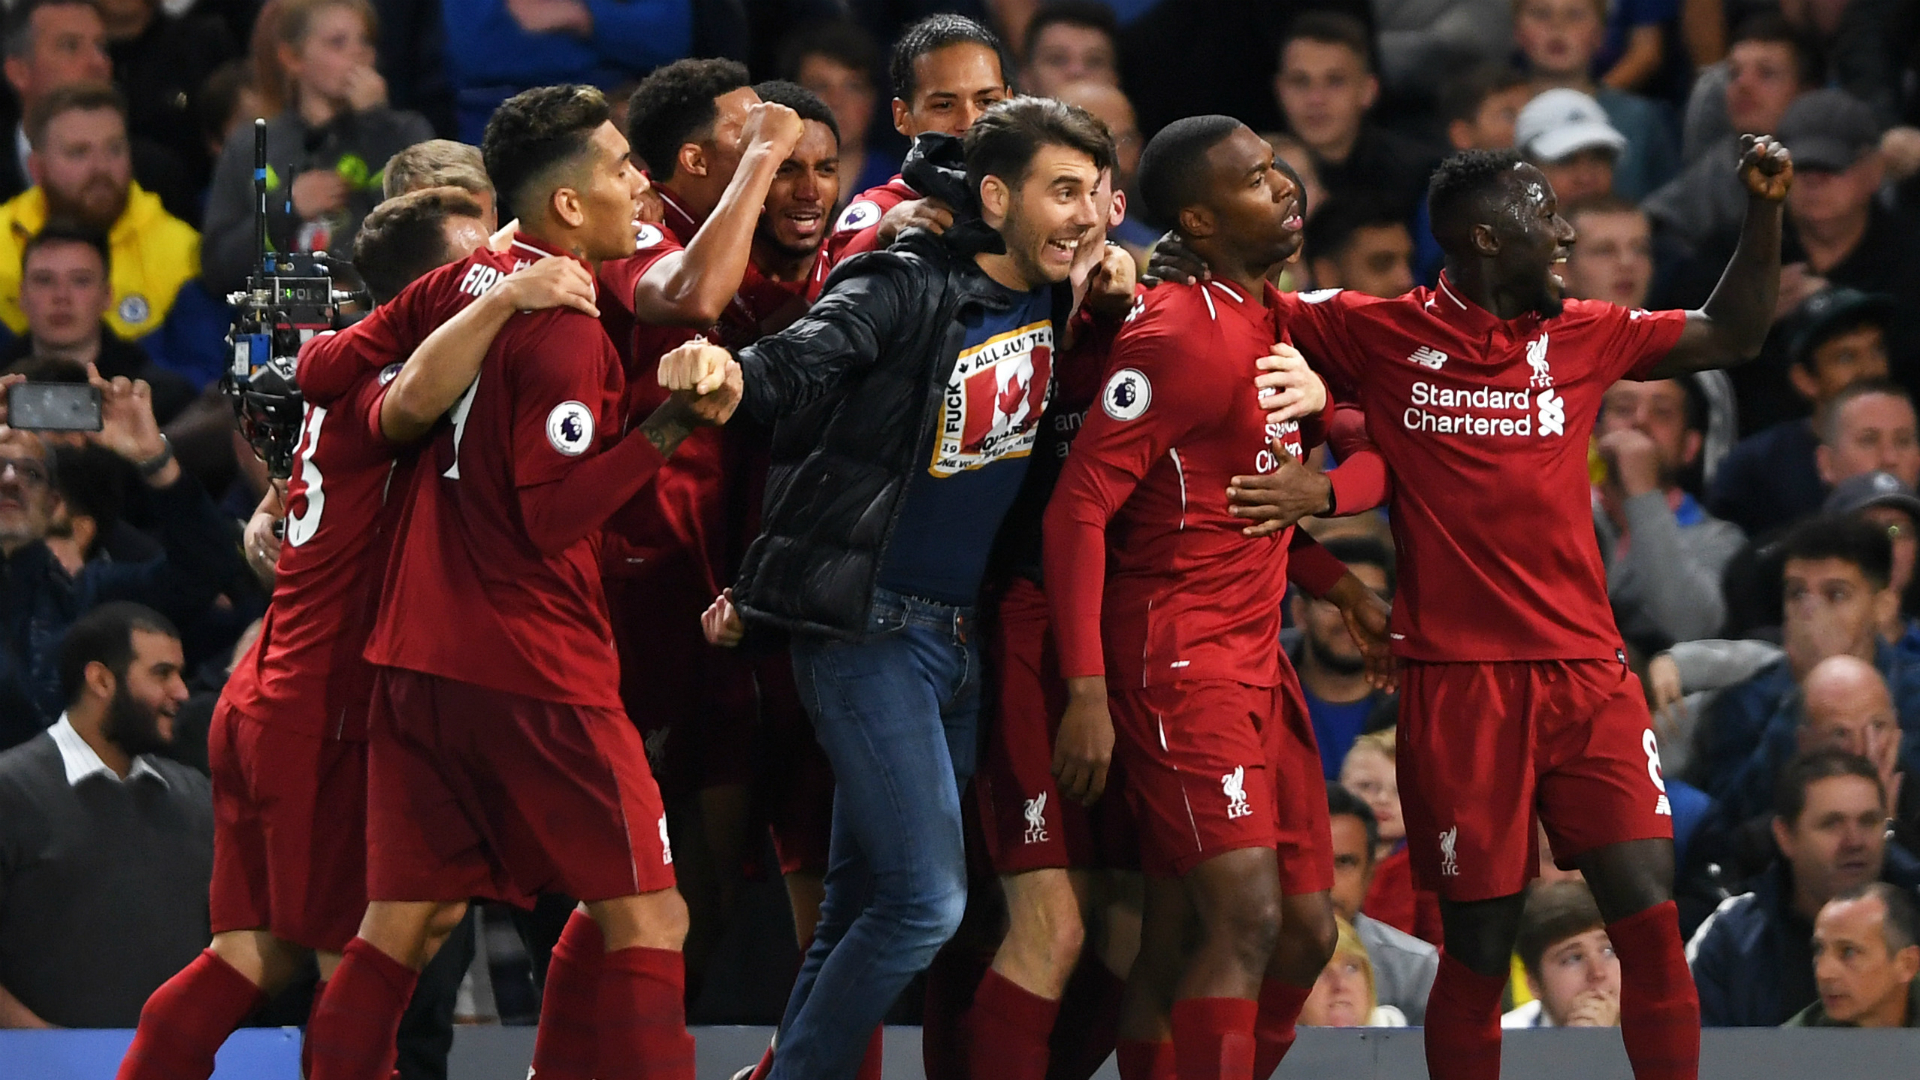 Sturridge: Chelsea goal probably my best ever